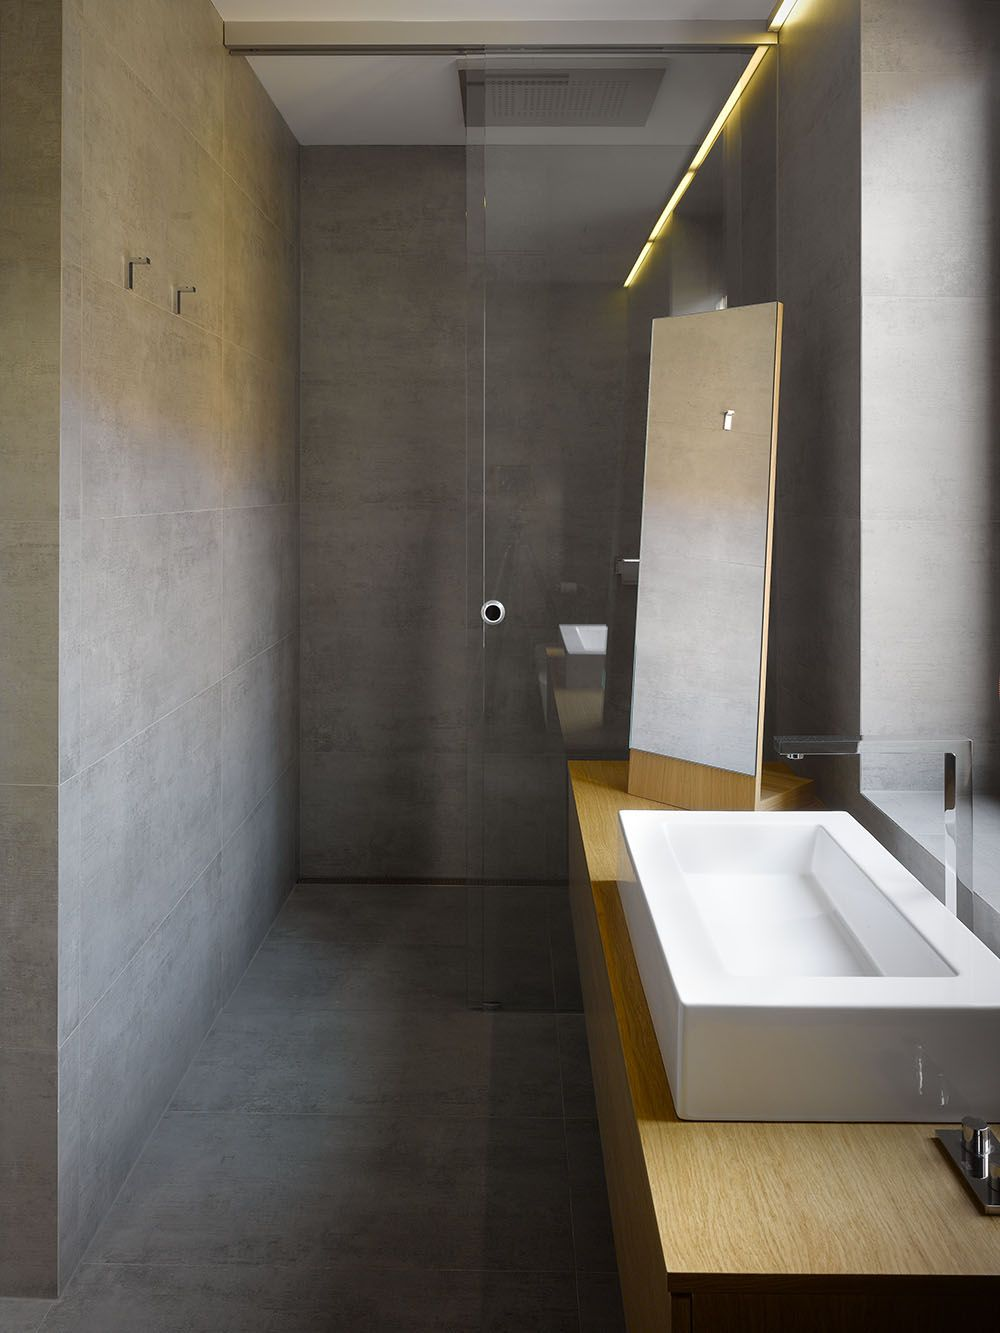 extreme minimalist bathroom of concrete and wood [1000x1333